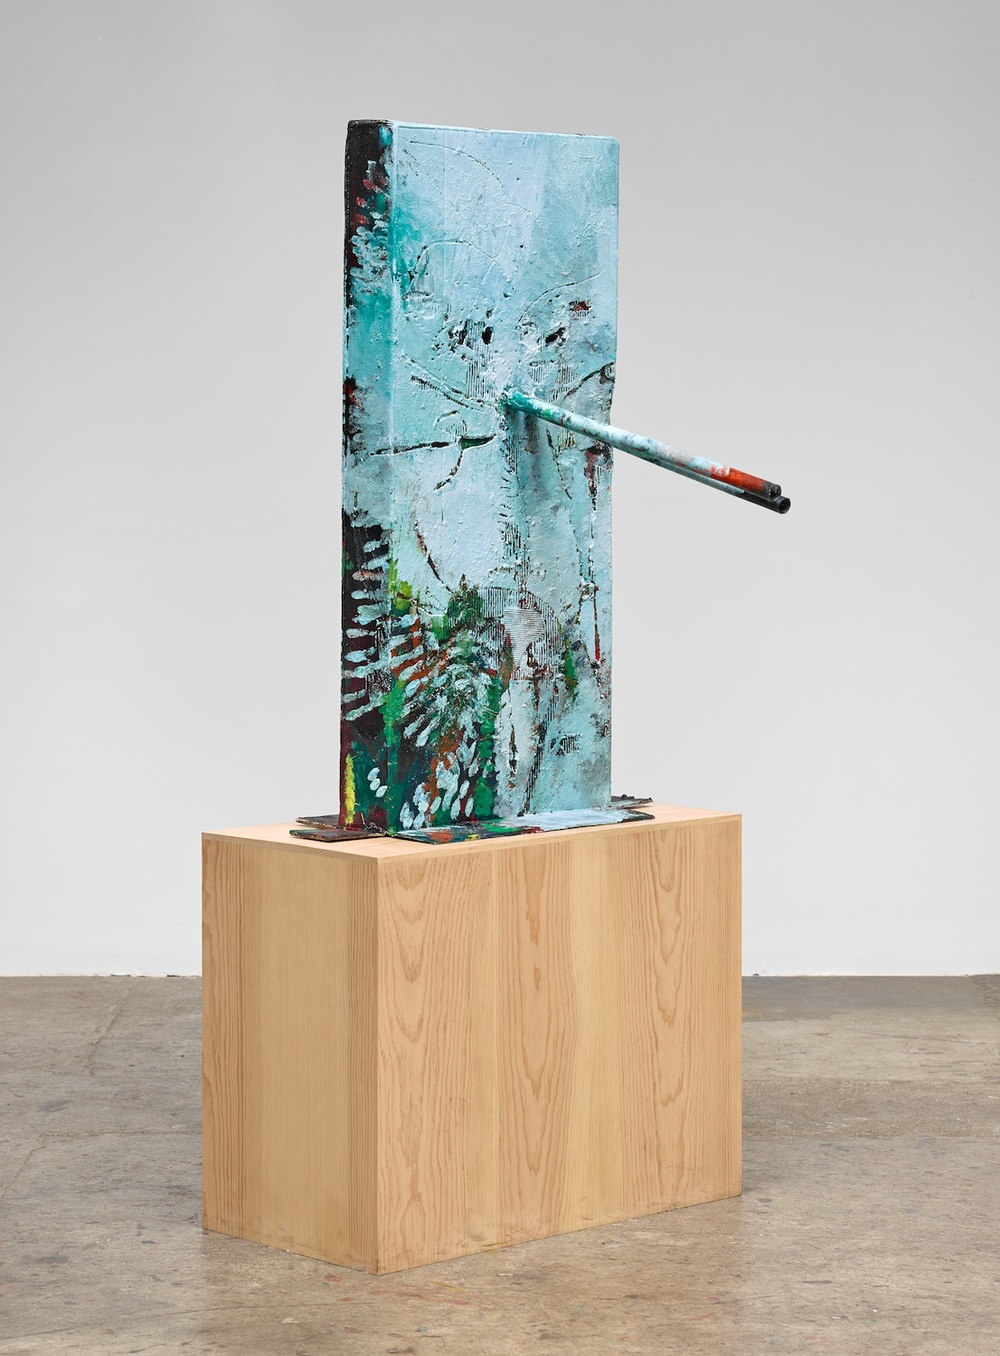 "Mark Grotjahn Untitled (Blue Face, Italian Mask M30.a) 2013 Painted bronze 53"" x 34"" x 38"" M30.a"